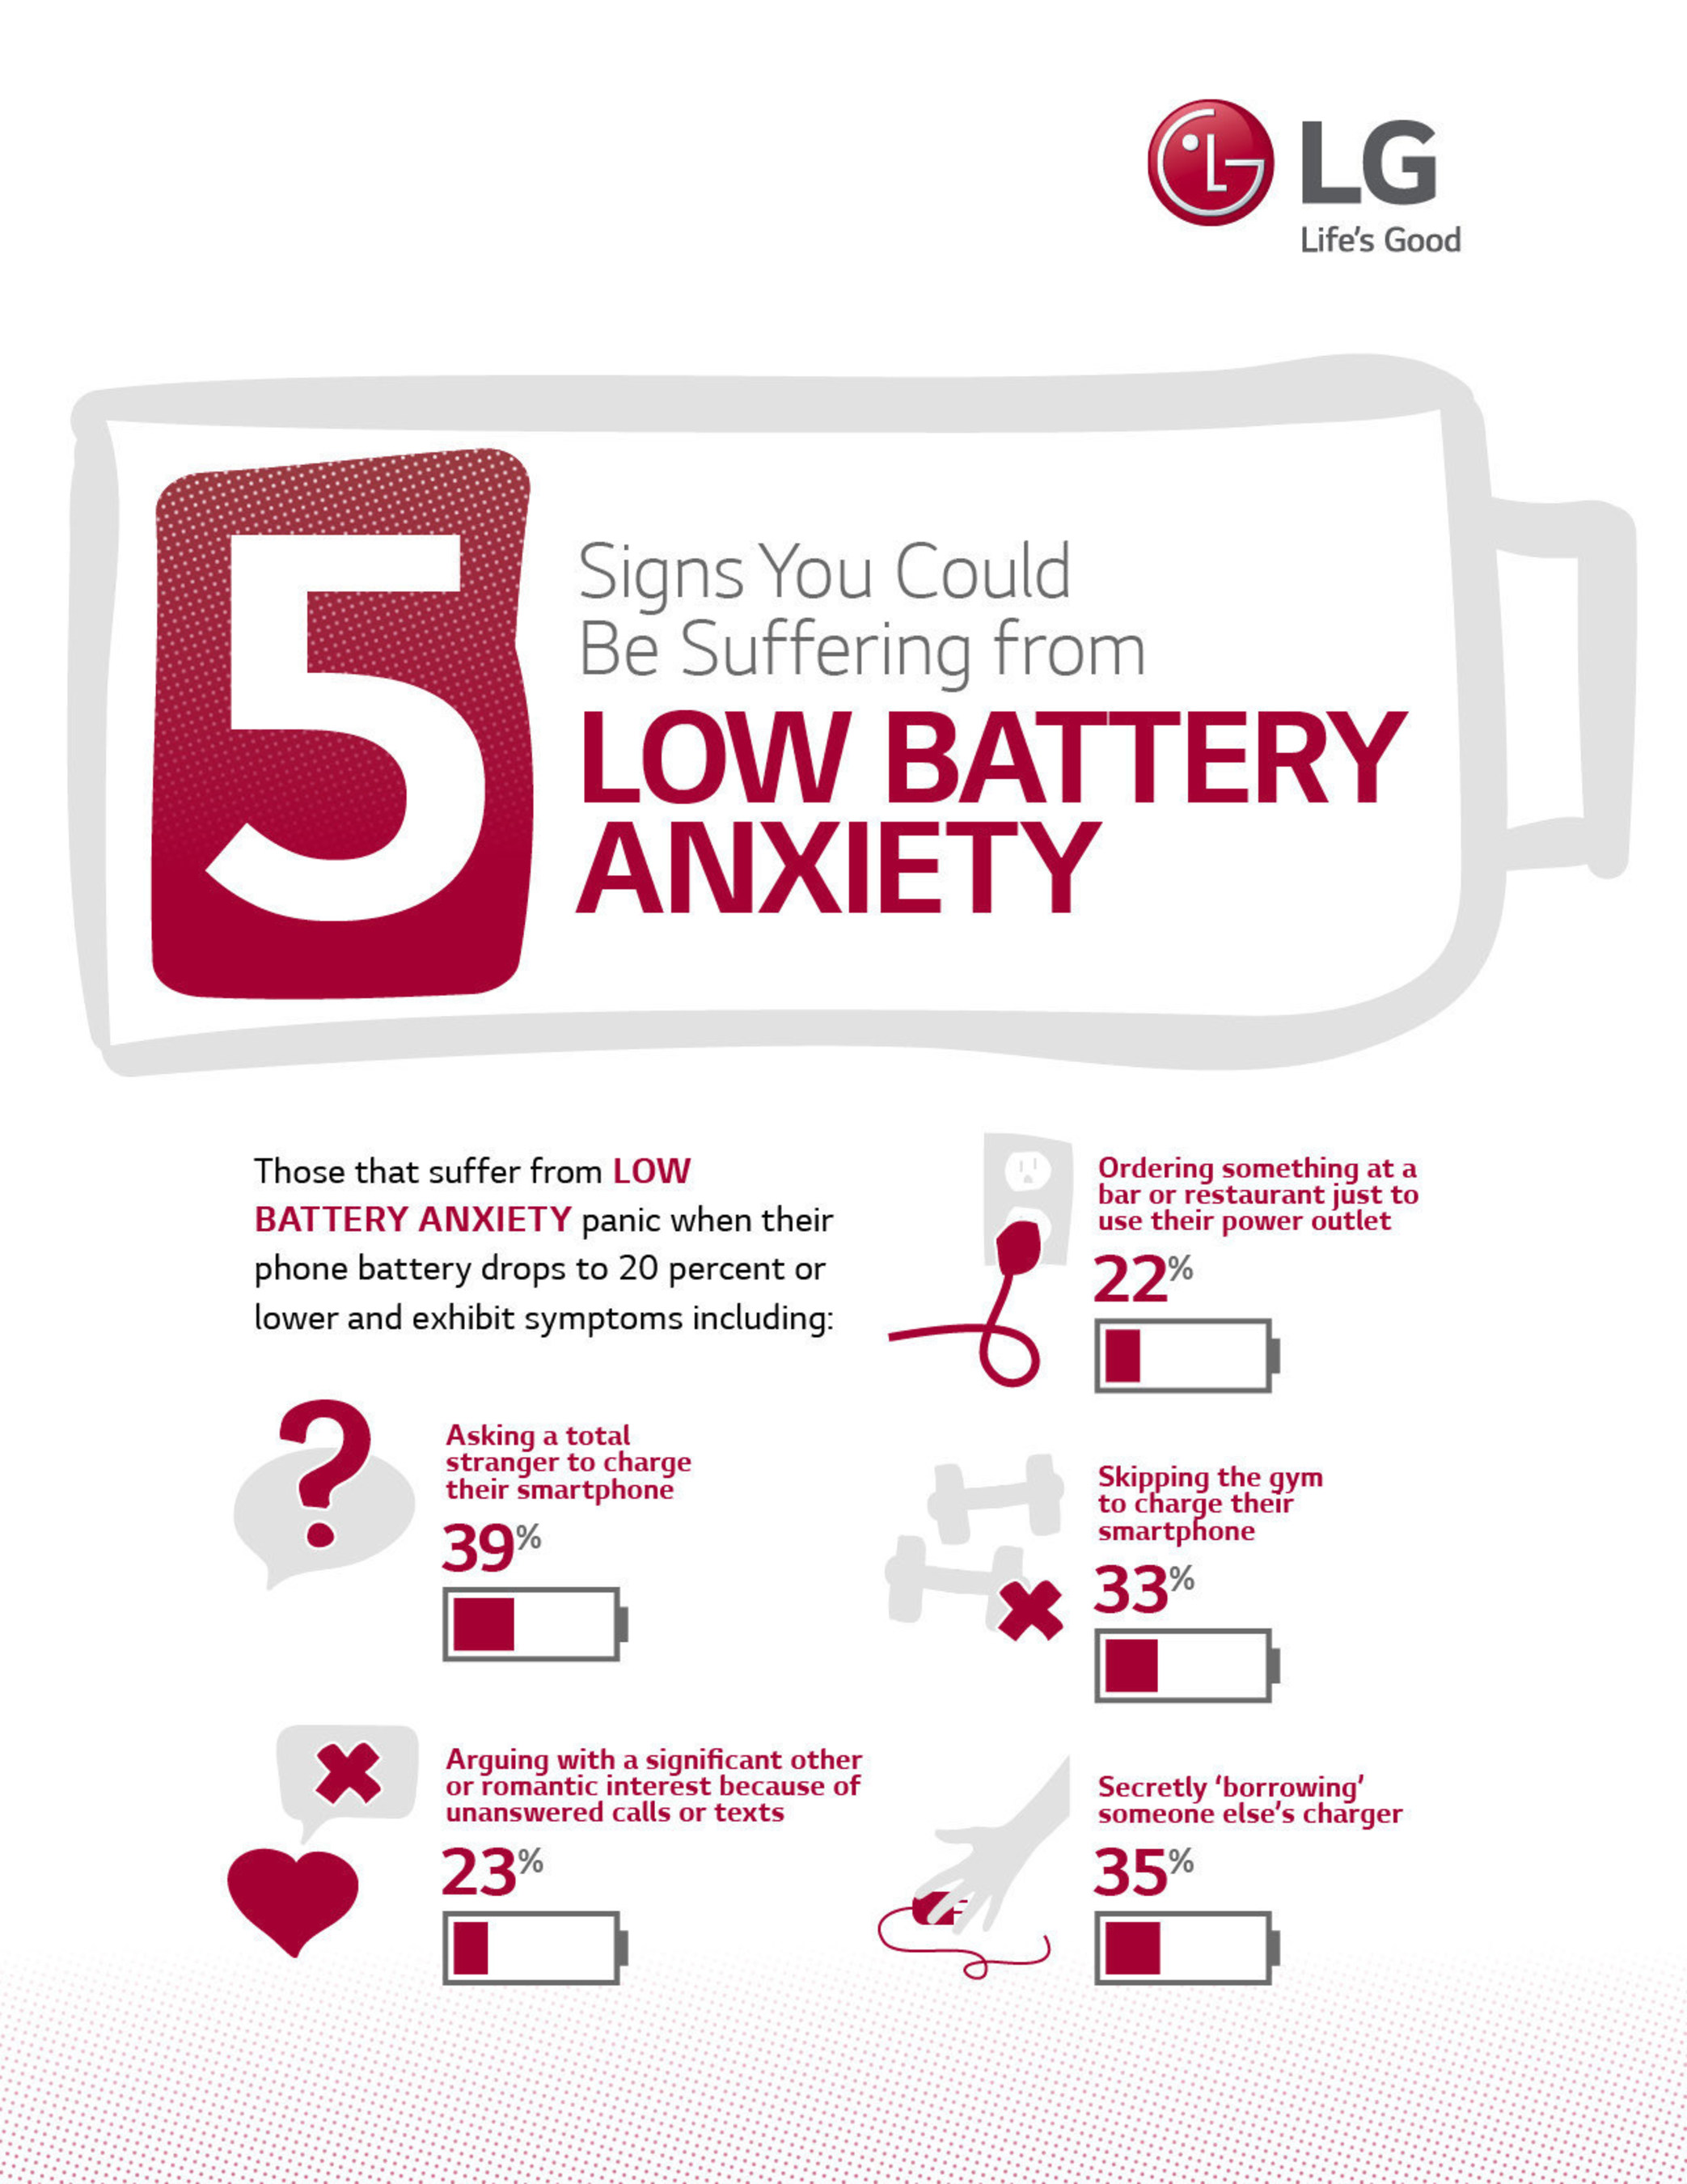 Those that suffer from Low Battery Anxiety panic when their phone battery drops to 20 percent or lower.